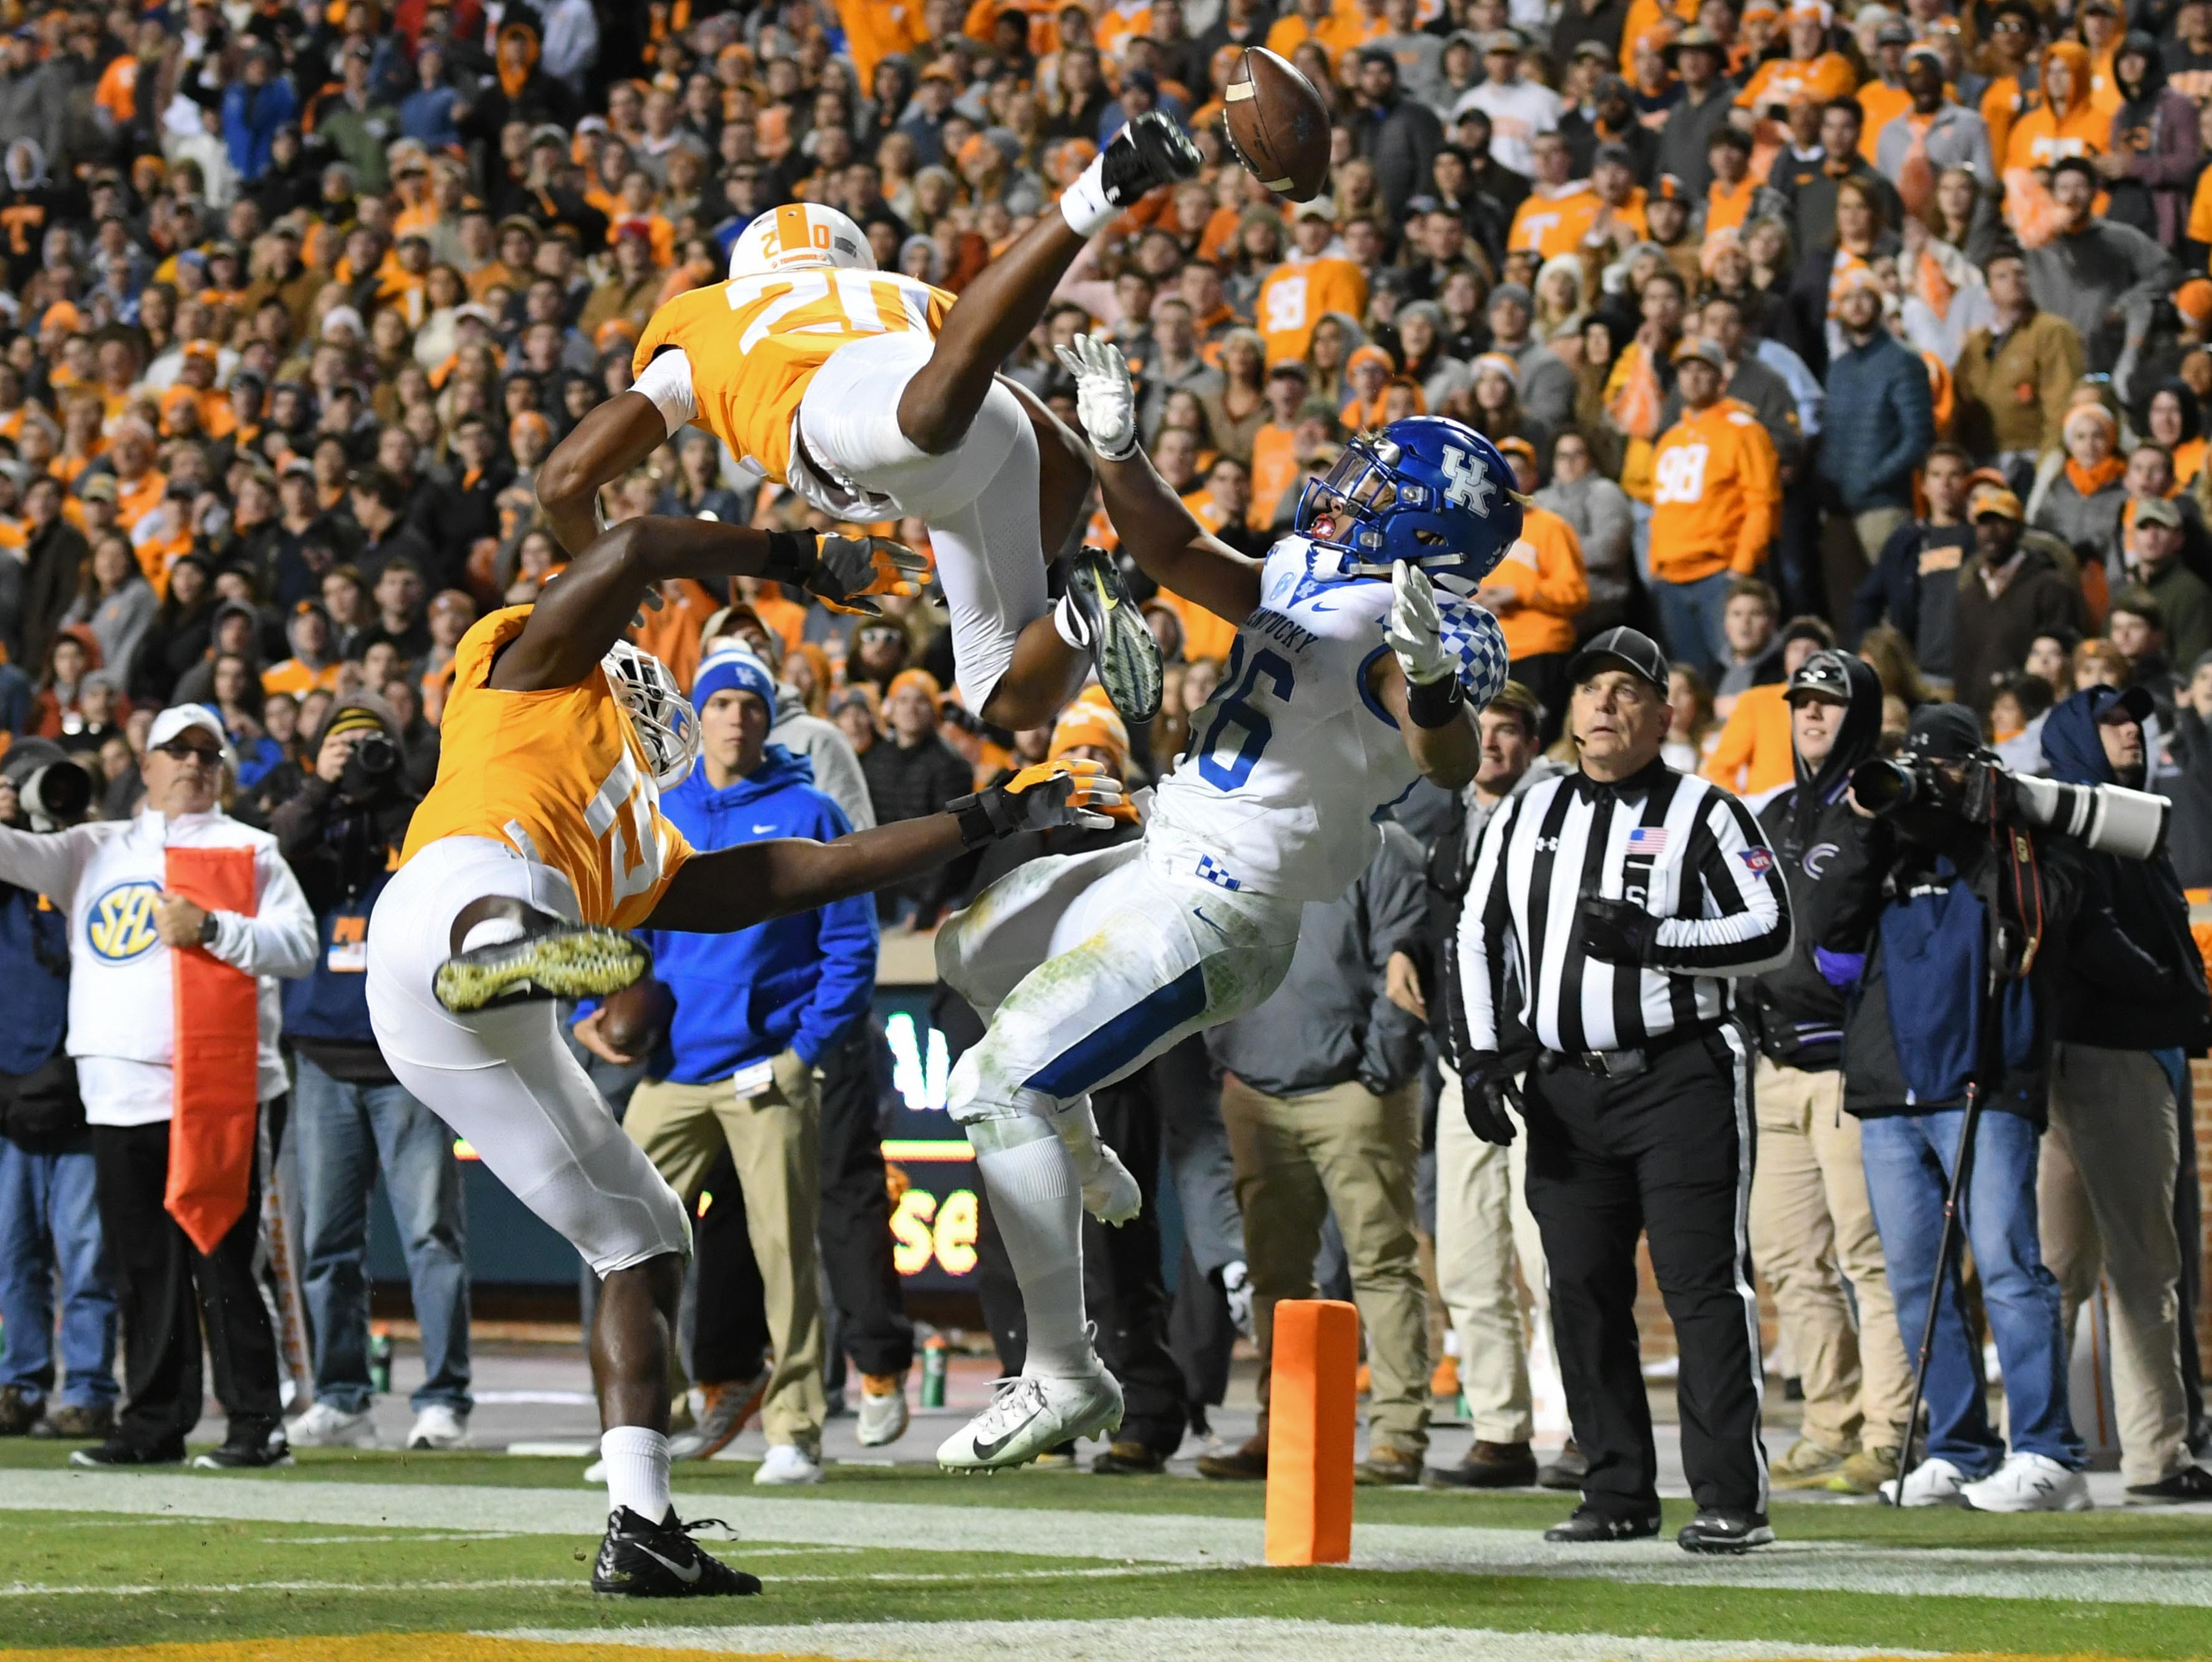 Tennessee Volunteers linebacker Darrell Taylor (19) and defensive back Bryce Thompson (20) break up a pass intended for Kentucky Wildcats running back Benny Snell Jr. (26) during the second half at Neyland Stadium.